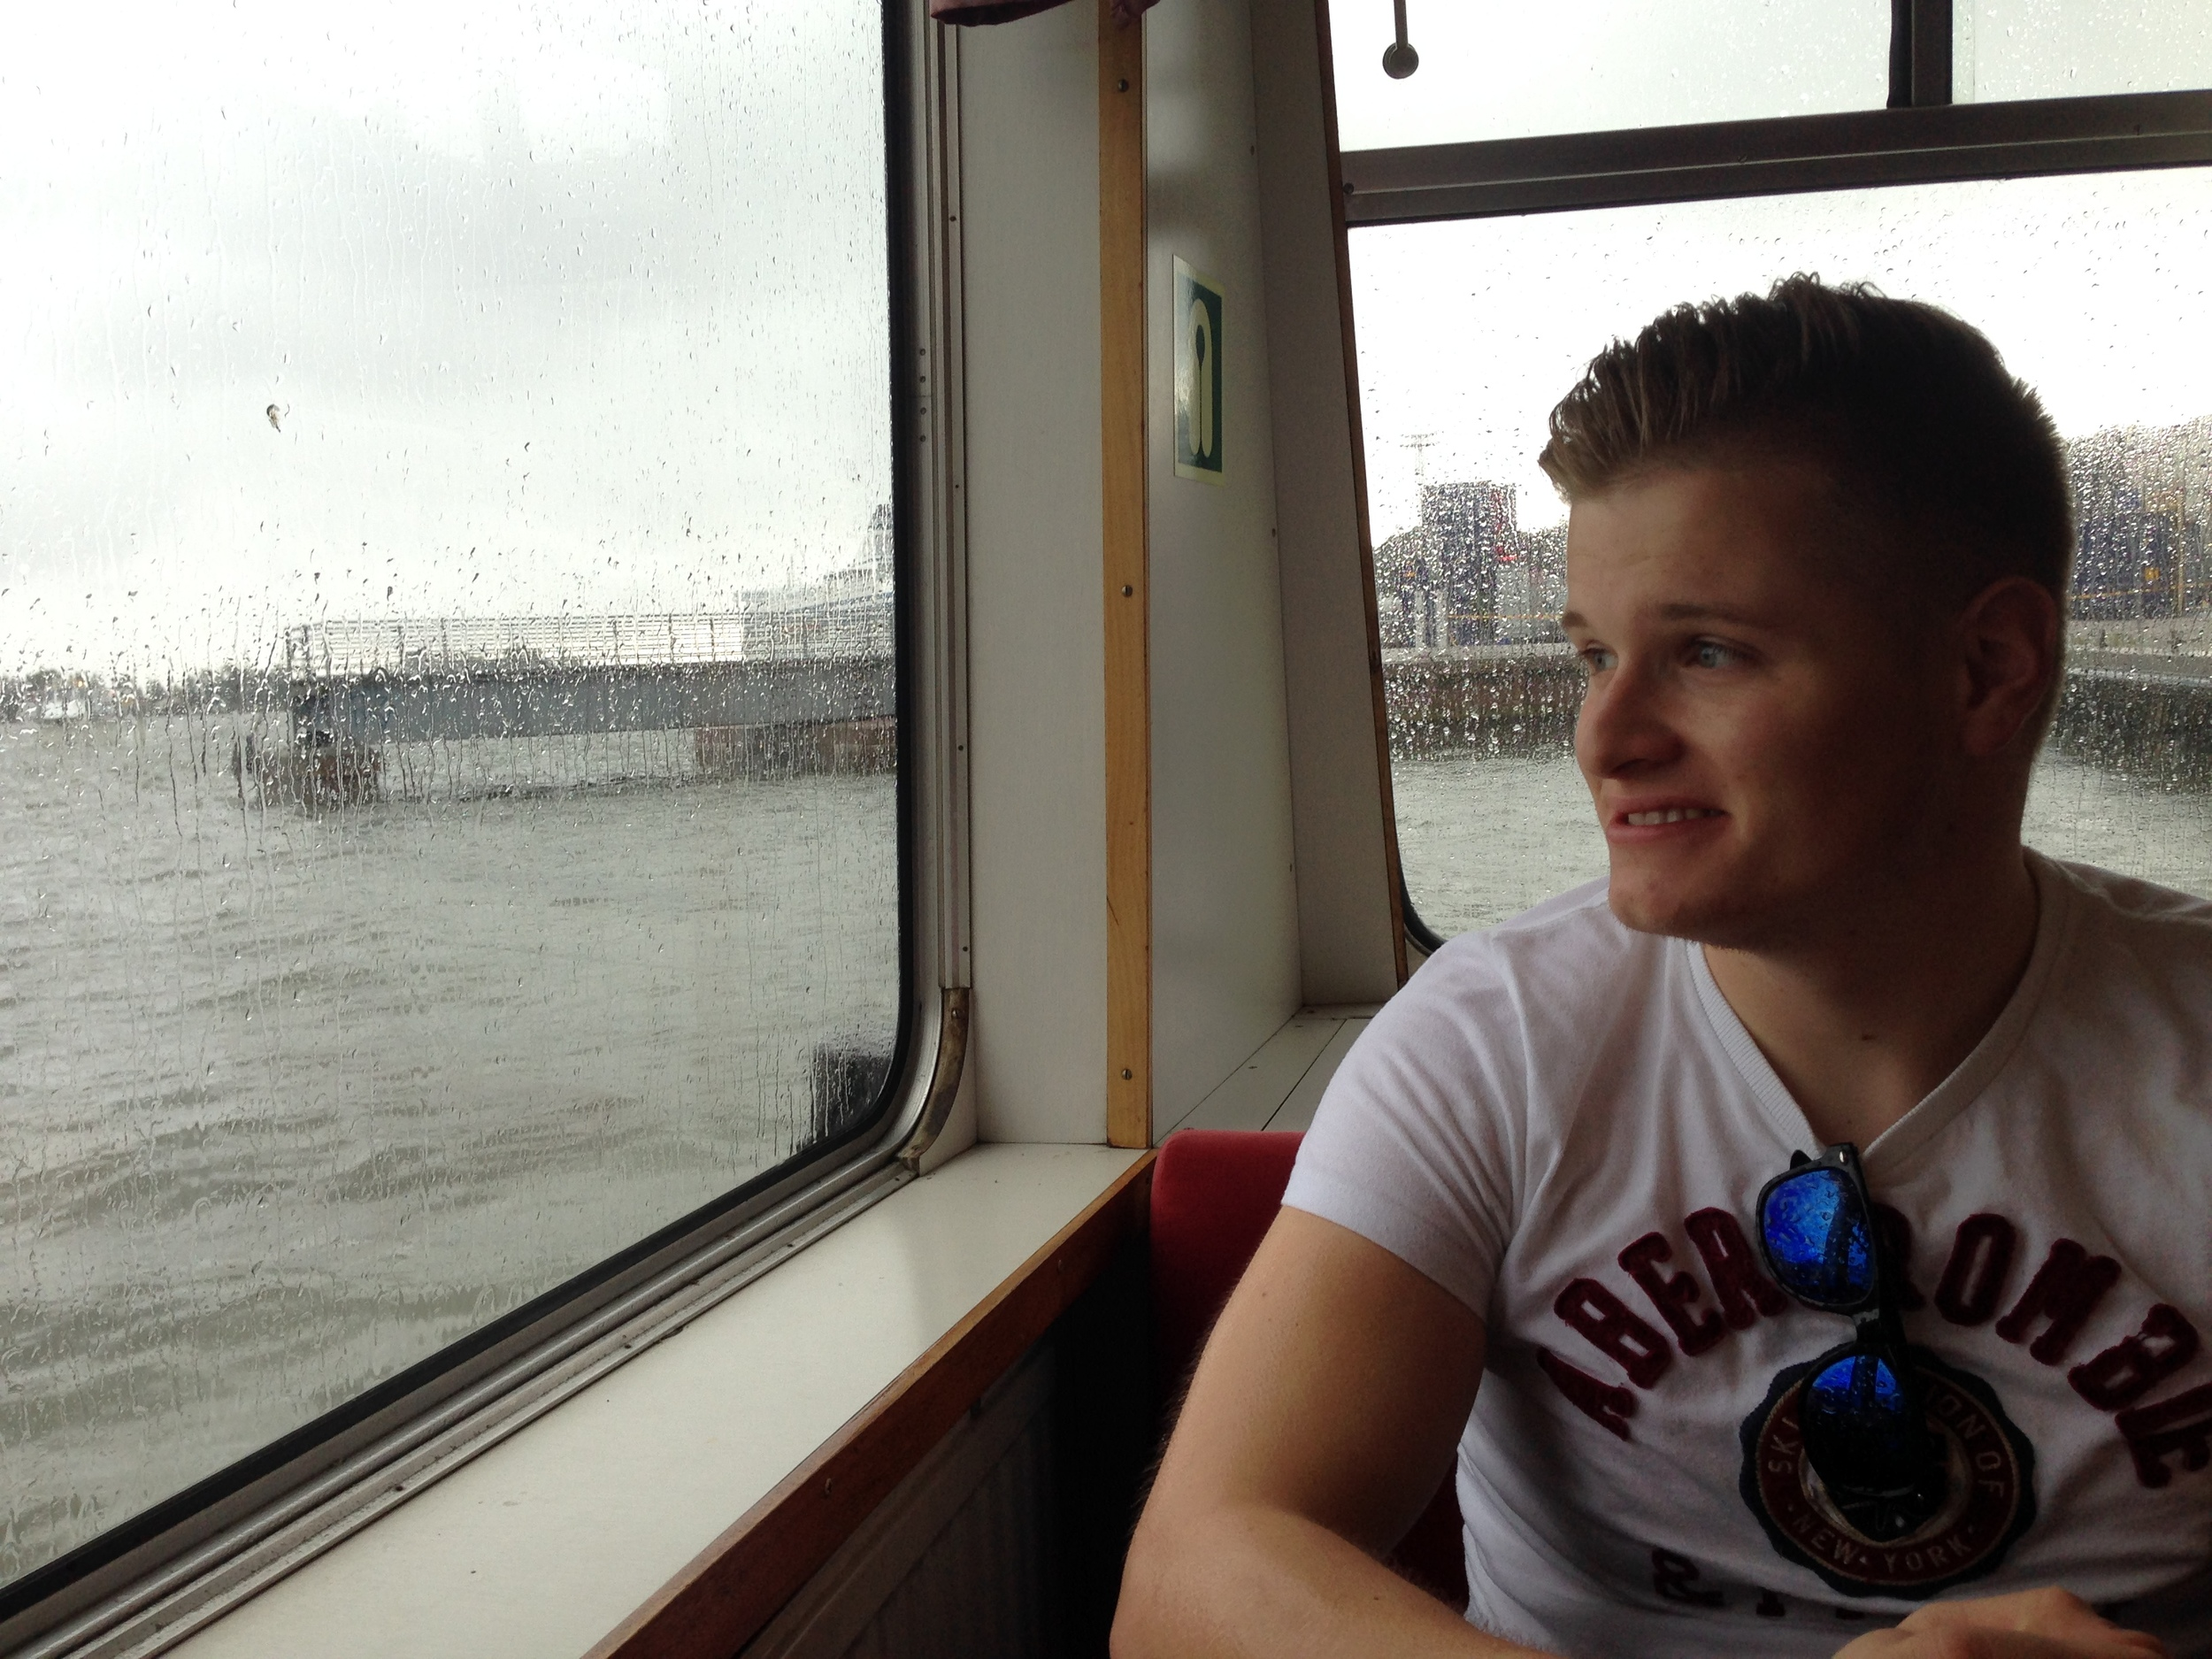 On the boat to Suomenlinna. The weather was awful that day.